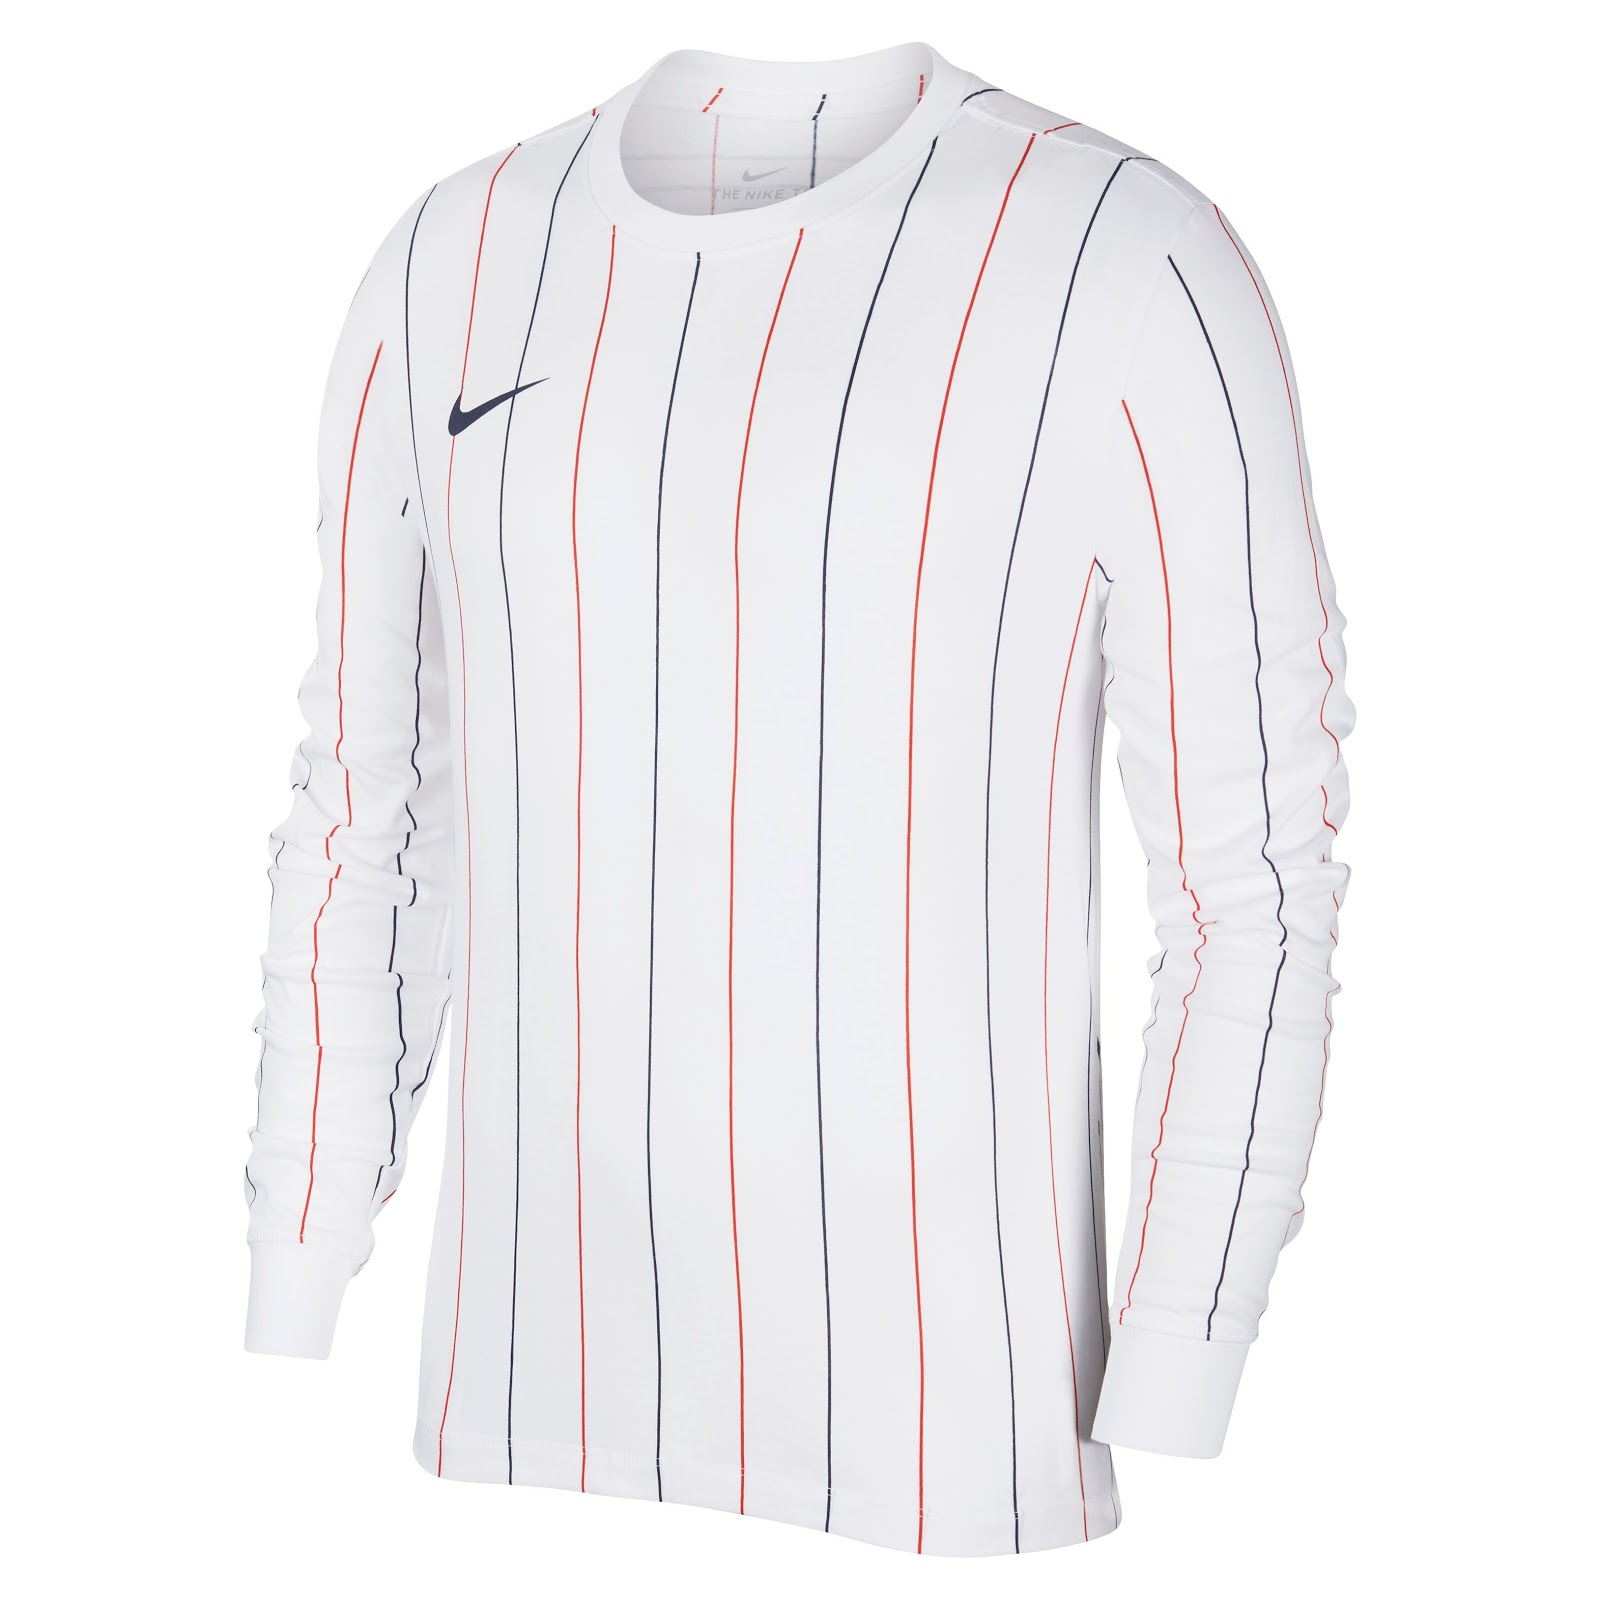 d322da40 Nike Paris Saint-Germain 2019 LS Retro Shirt Revealed - Footy ...